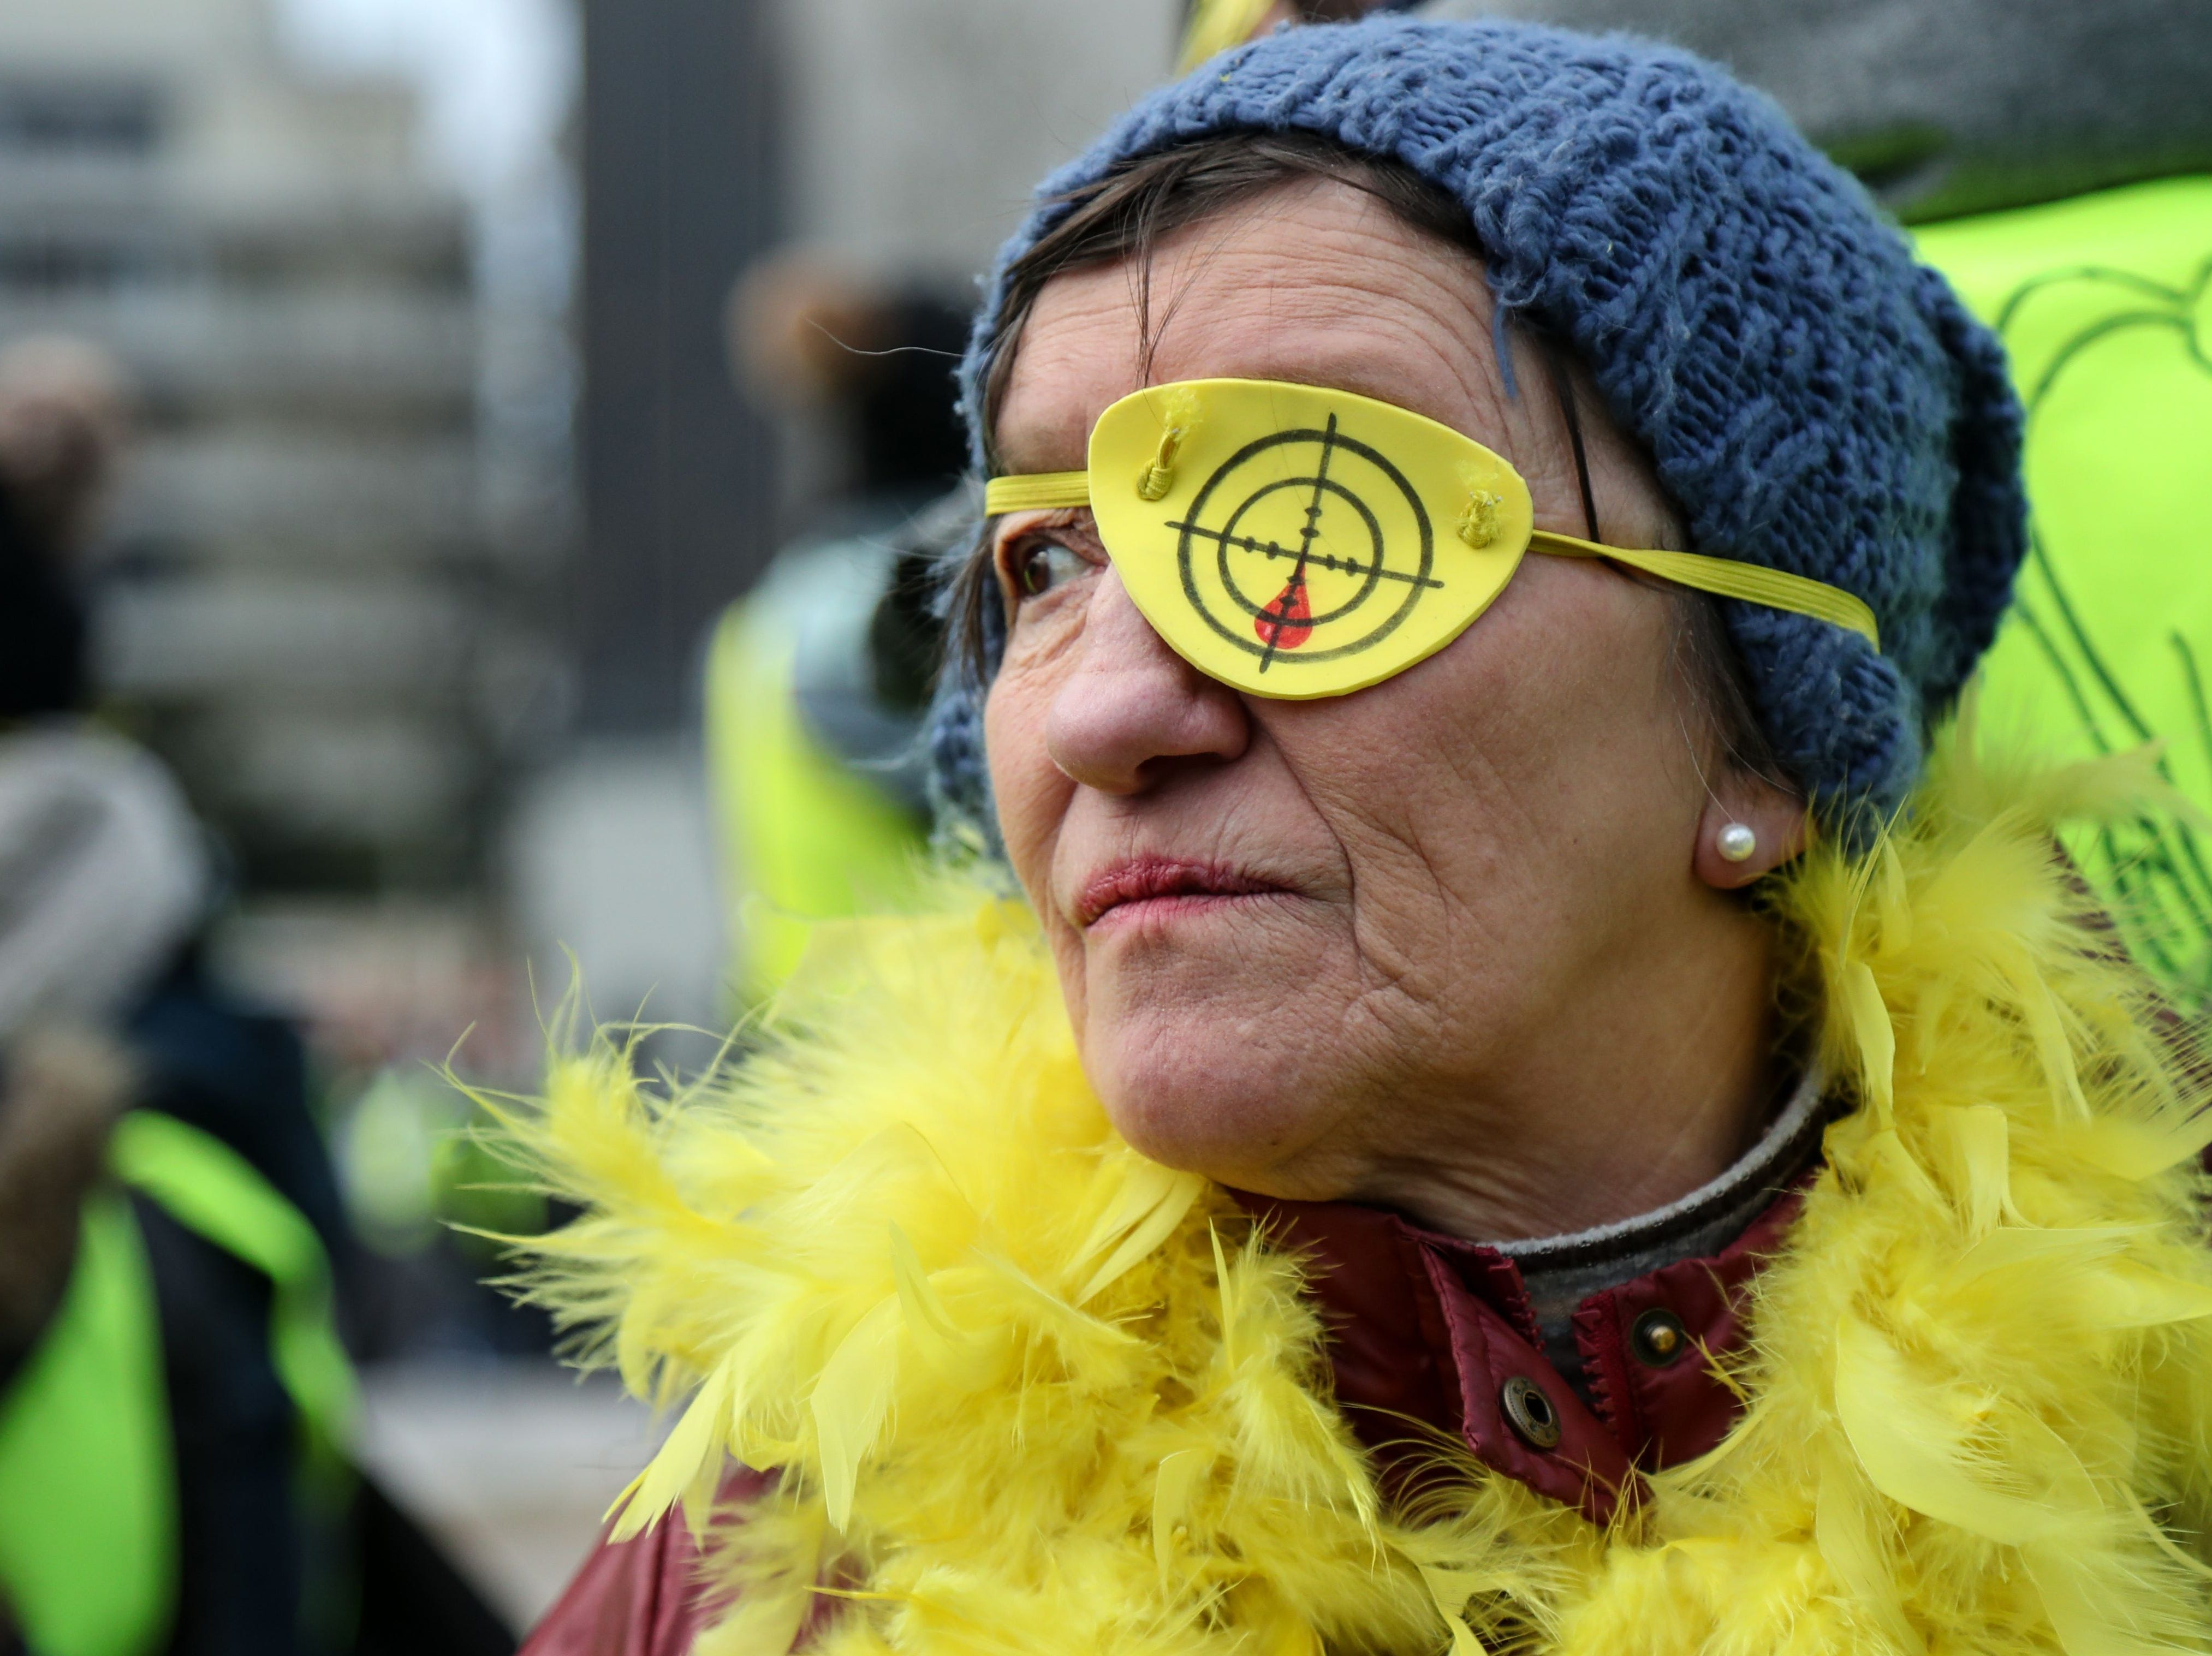 A protester with a fake eye injury, takes part in a march on Feb. 2, 2019 in Paris, called to pacifically protest against police violence toward participants of the last three months demonstrations in France, as 'Yellow Vest' protesters take to the streets for the 12th consecutive Saturday.